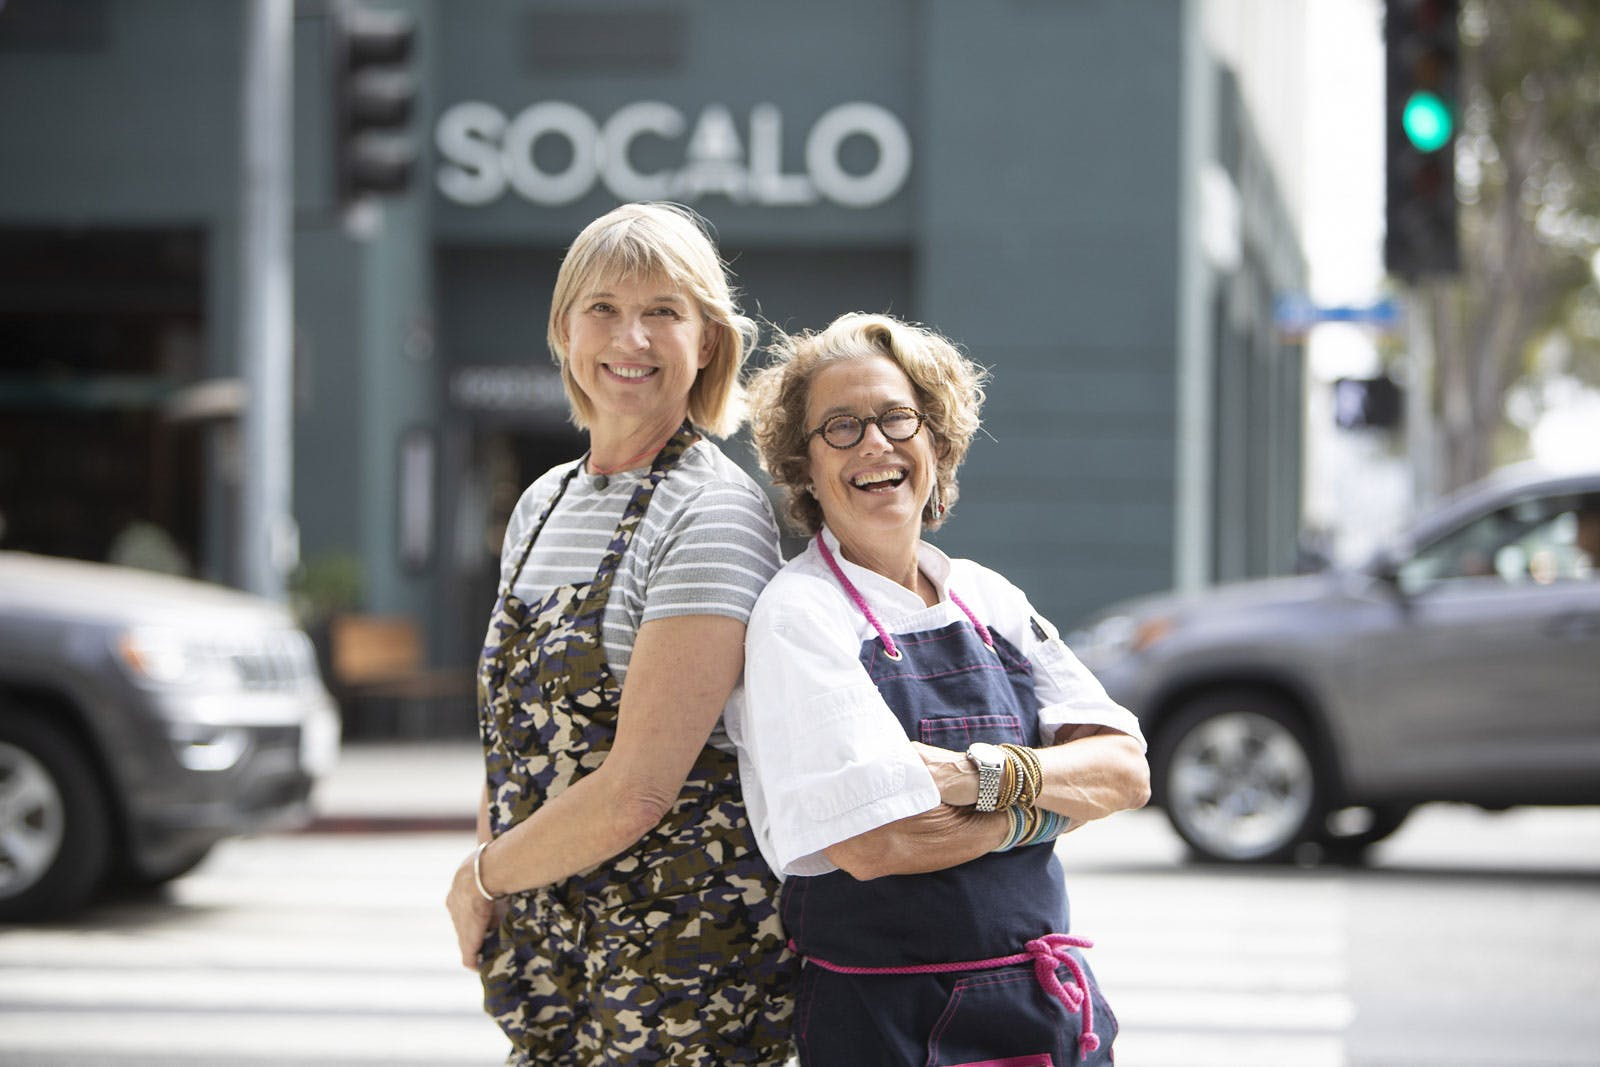 Mary Sue Milliken, Susan Feniger are posing for a picture